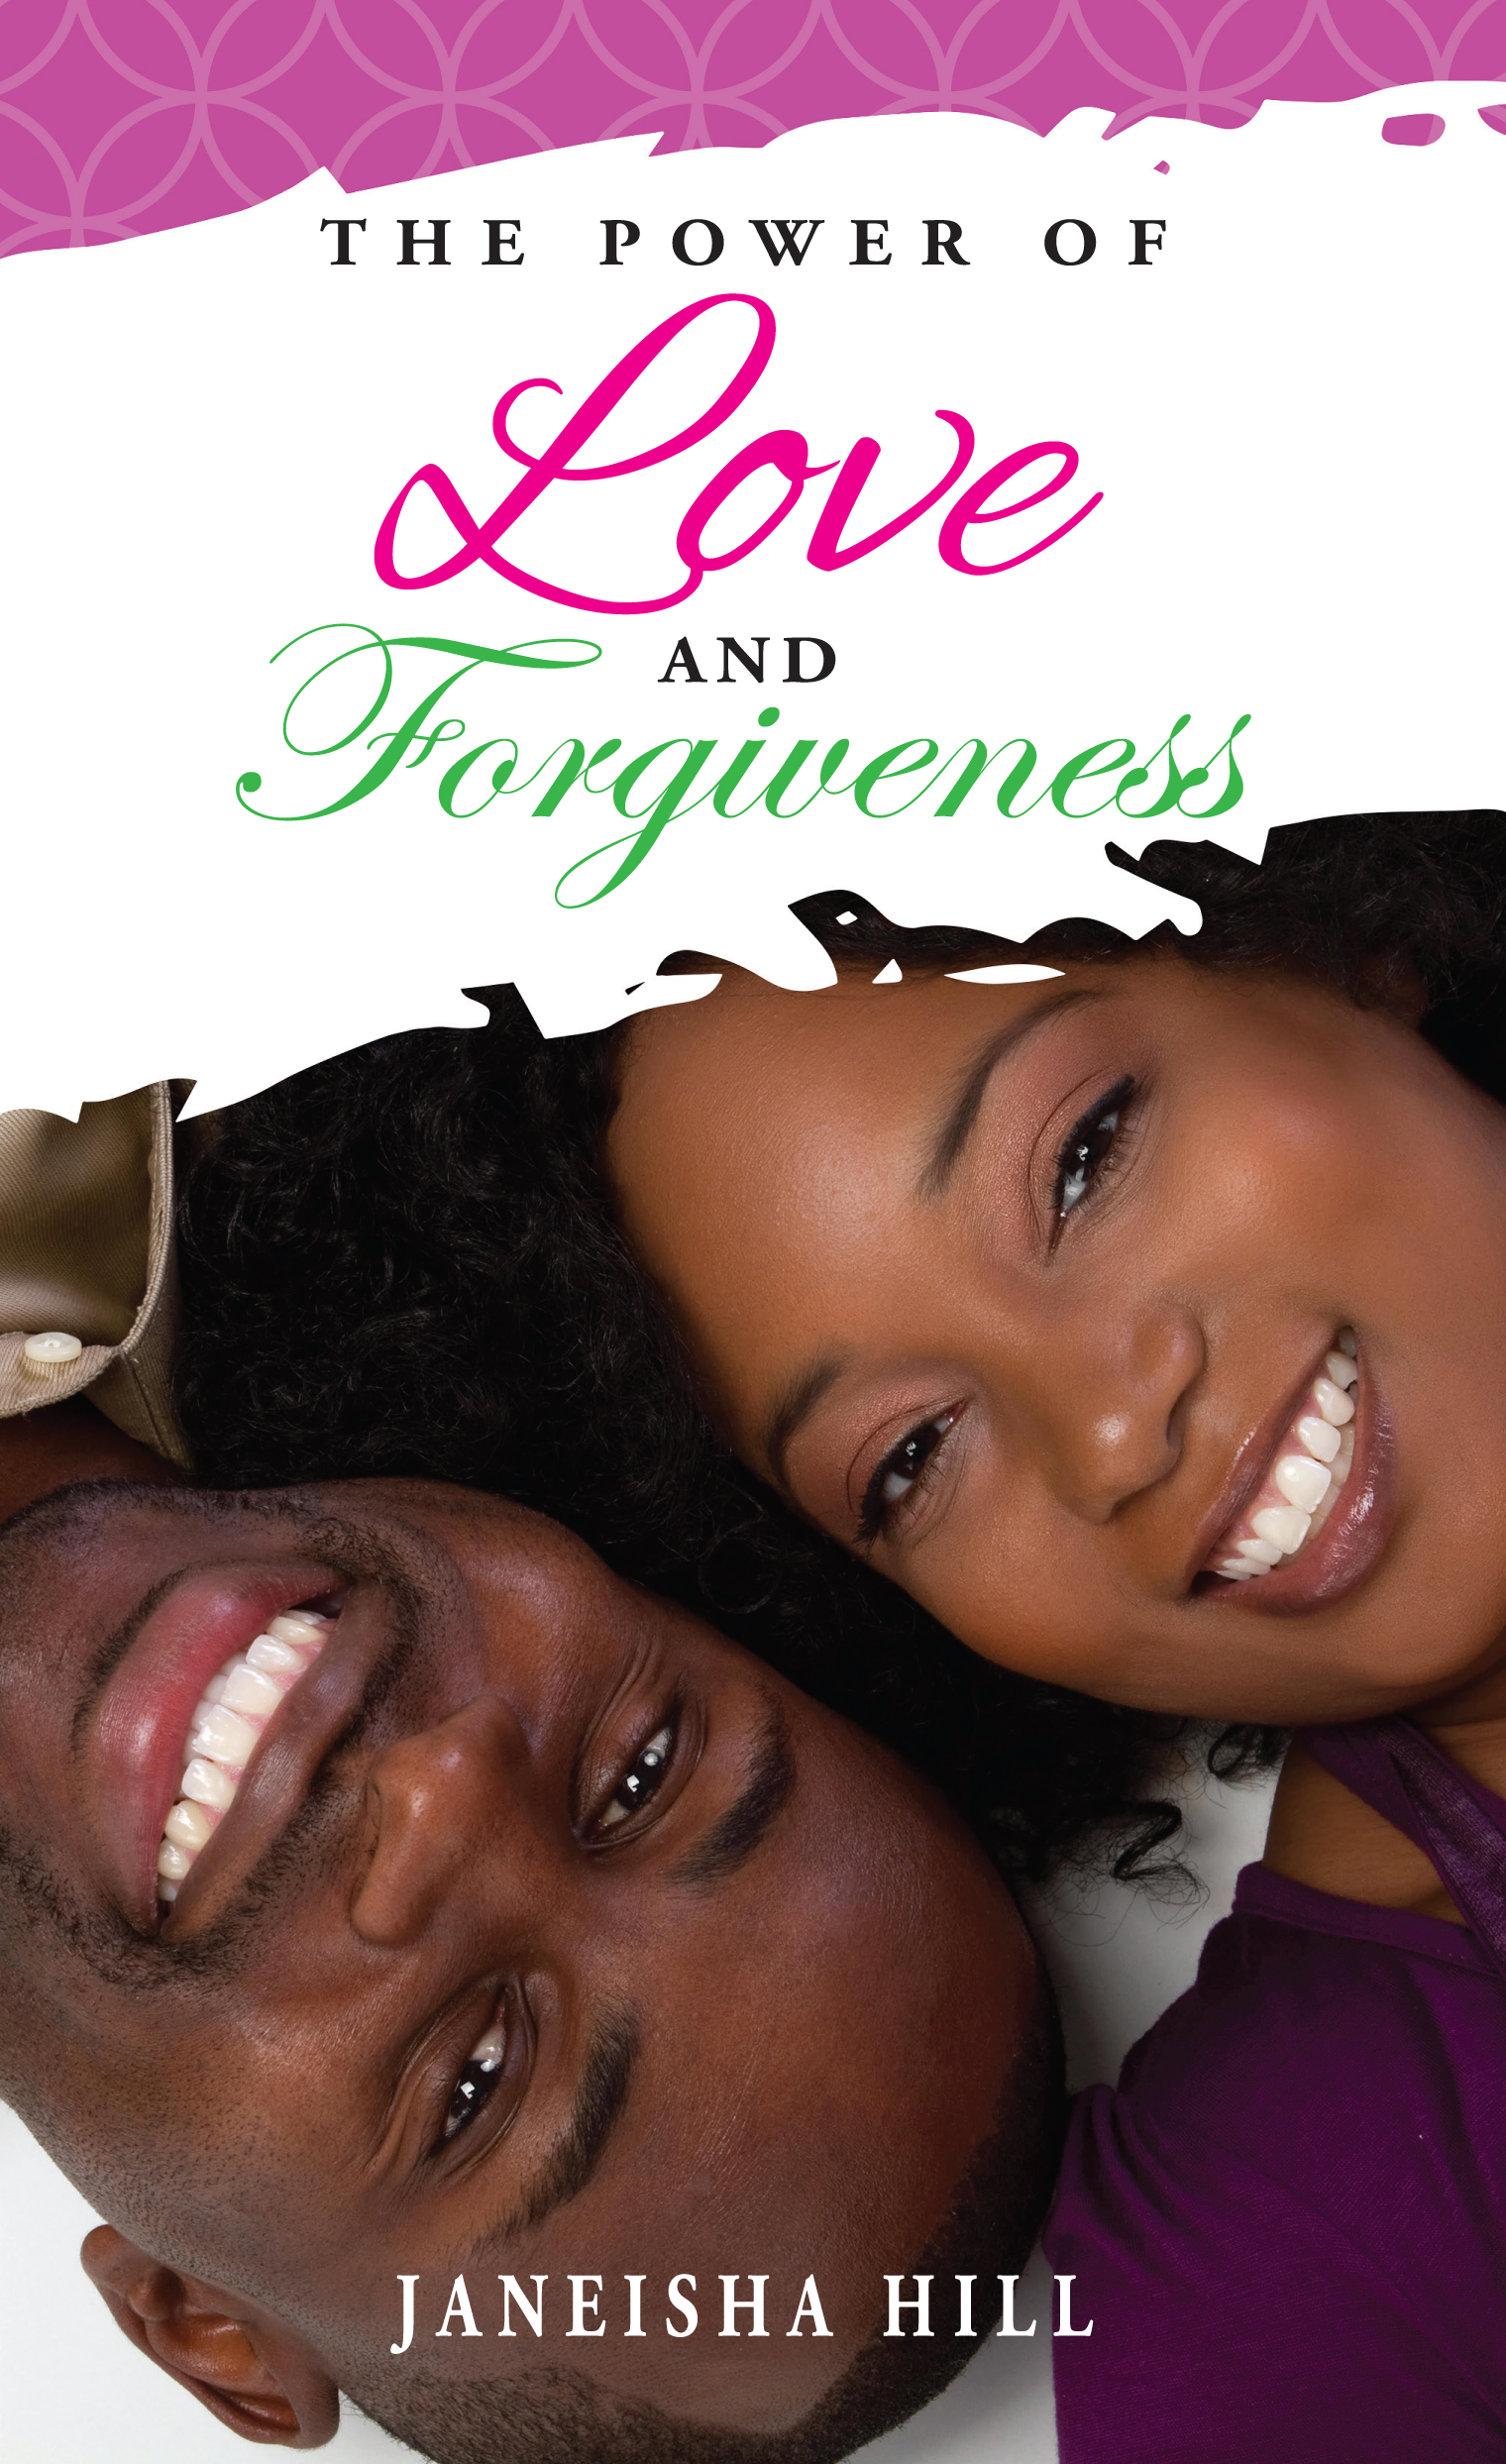 The Power of Love and Forgiveness, an Ebook by JanJP